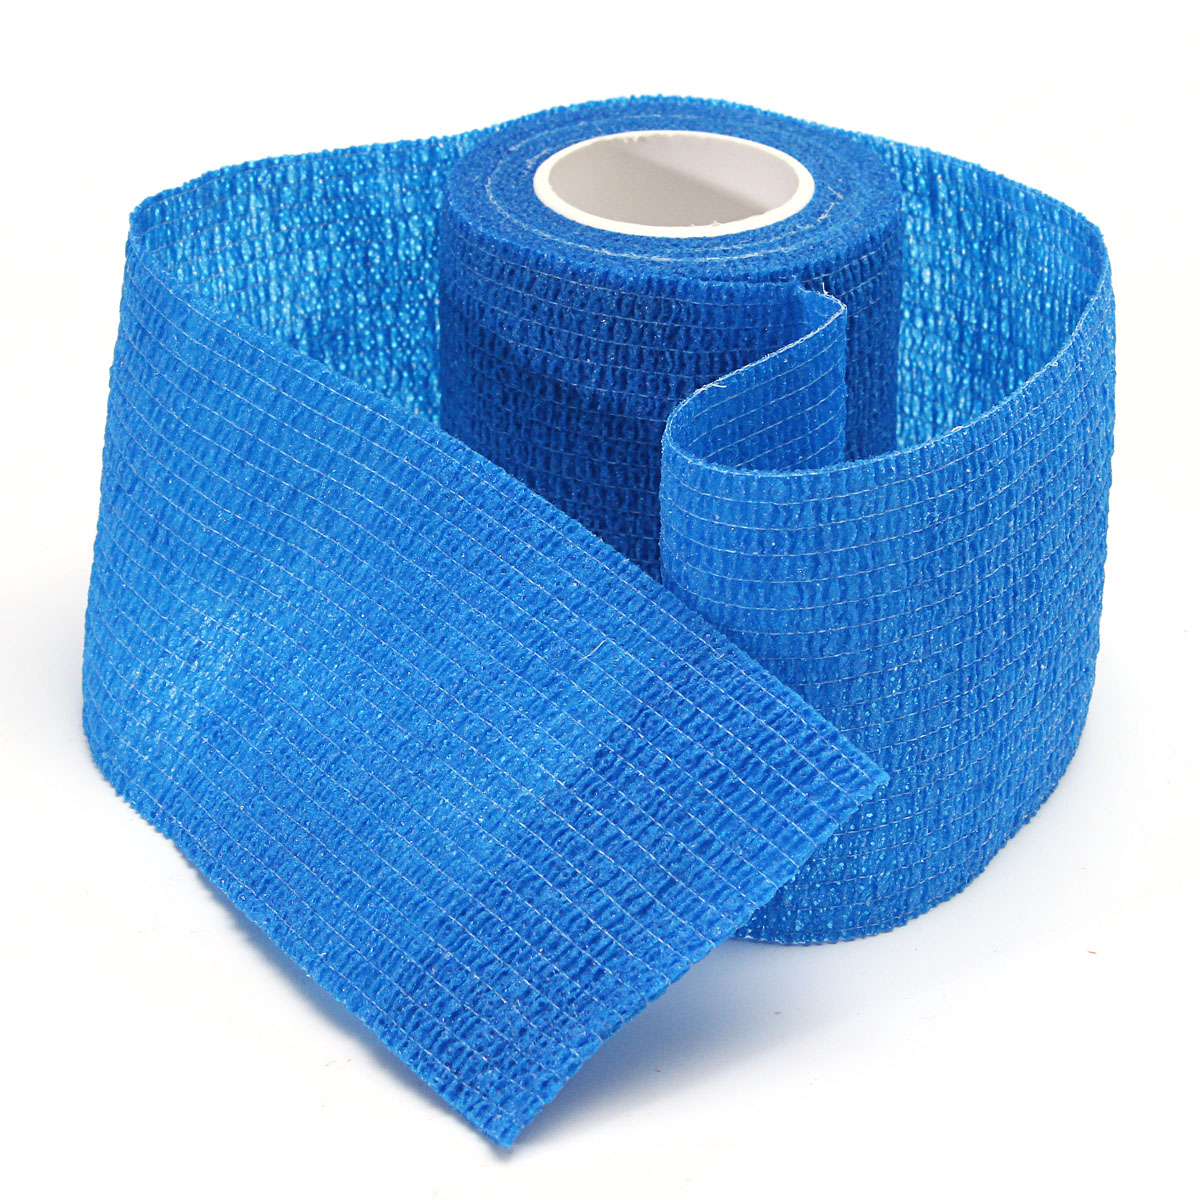 10Pcs Premium Tattoo Self-adhesive Elastic Bandage 4.5M*5CM Tattoo Grip Cover